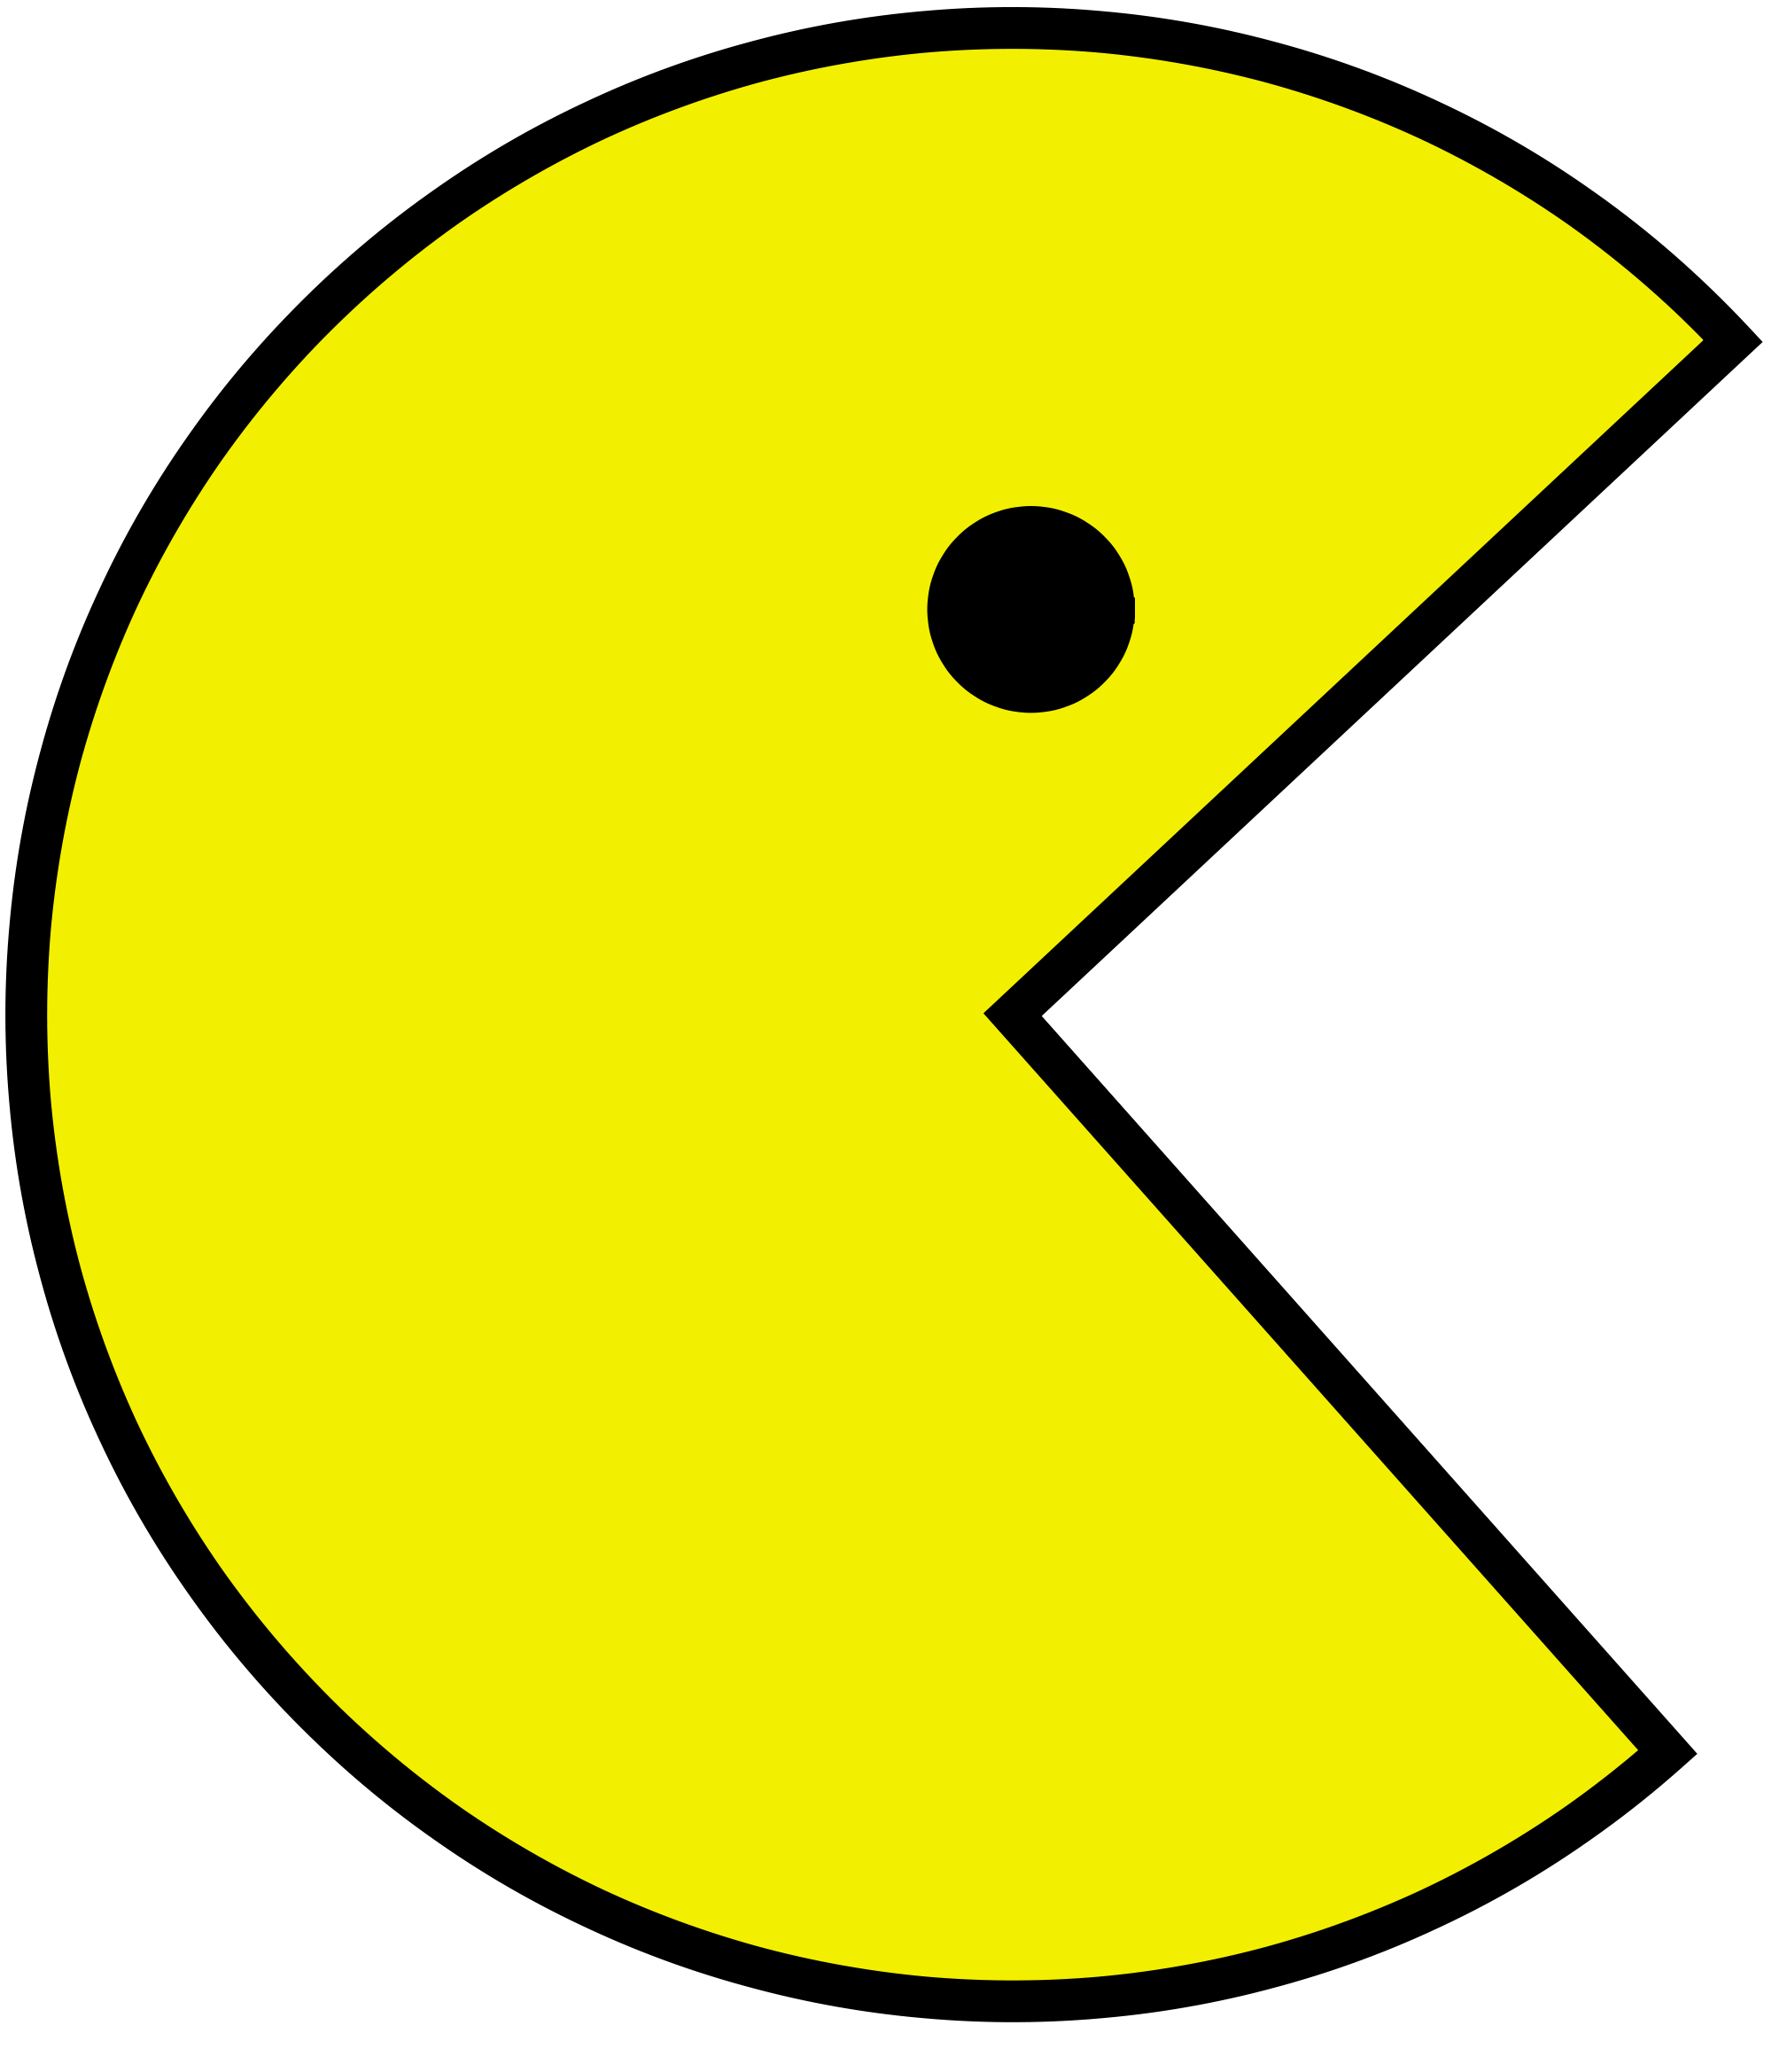 Pac man dots png. Pacman remember the little